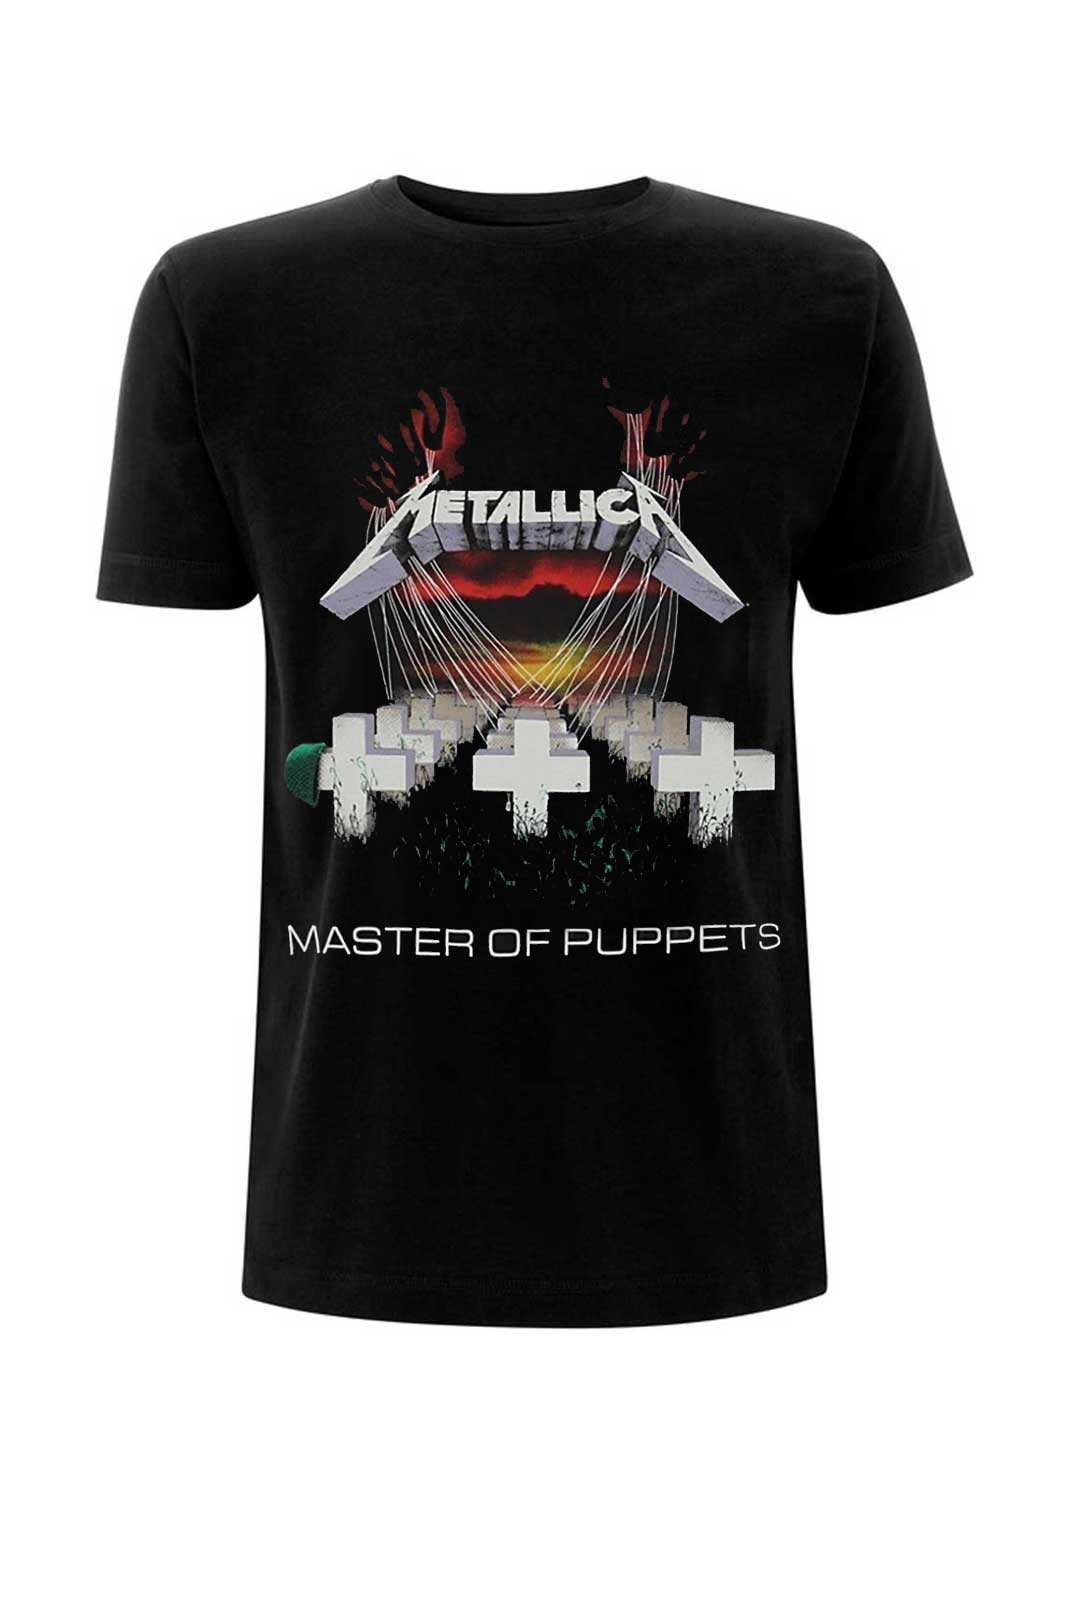 official merchandise metallica master of puppets